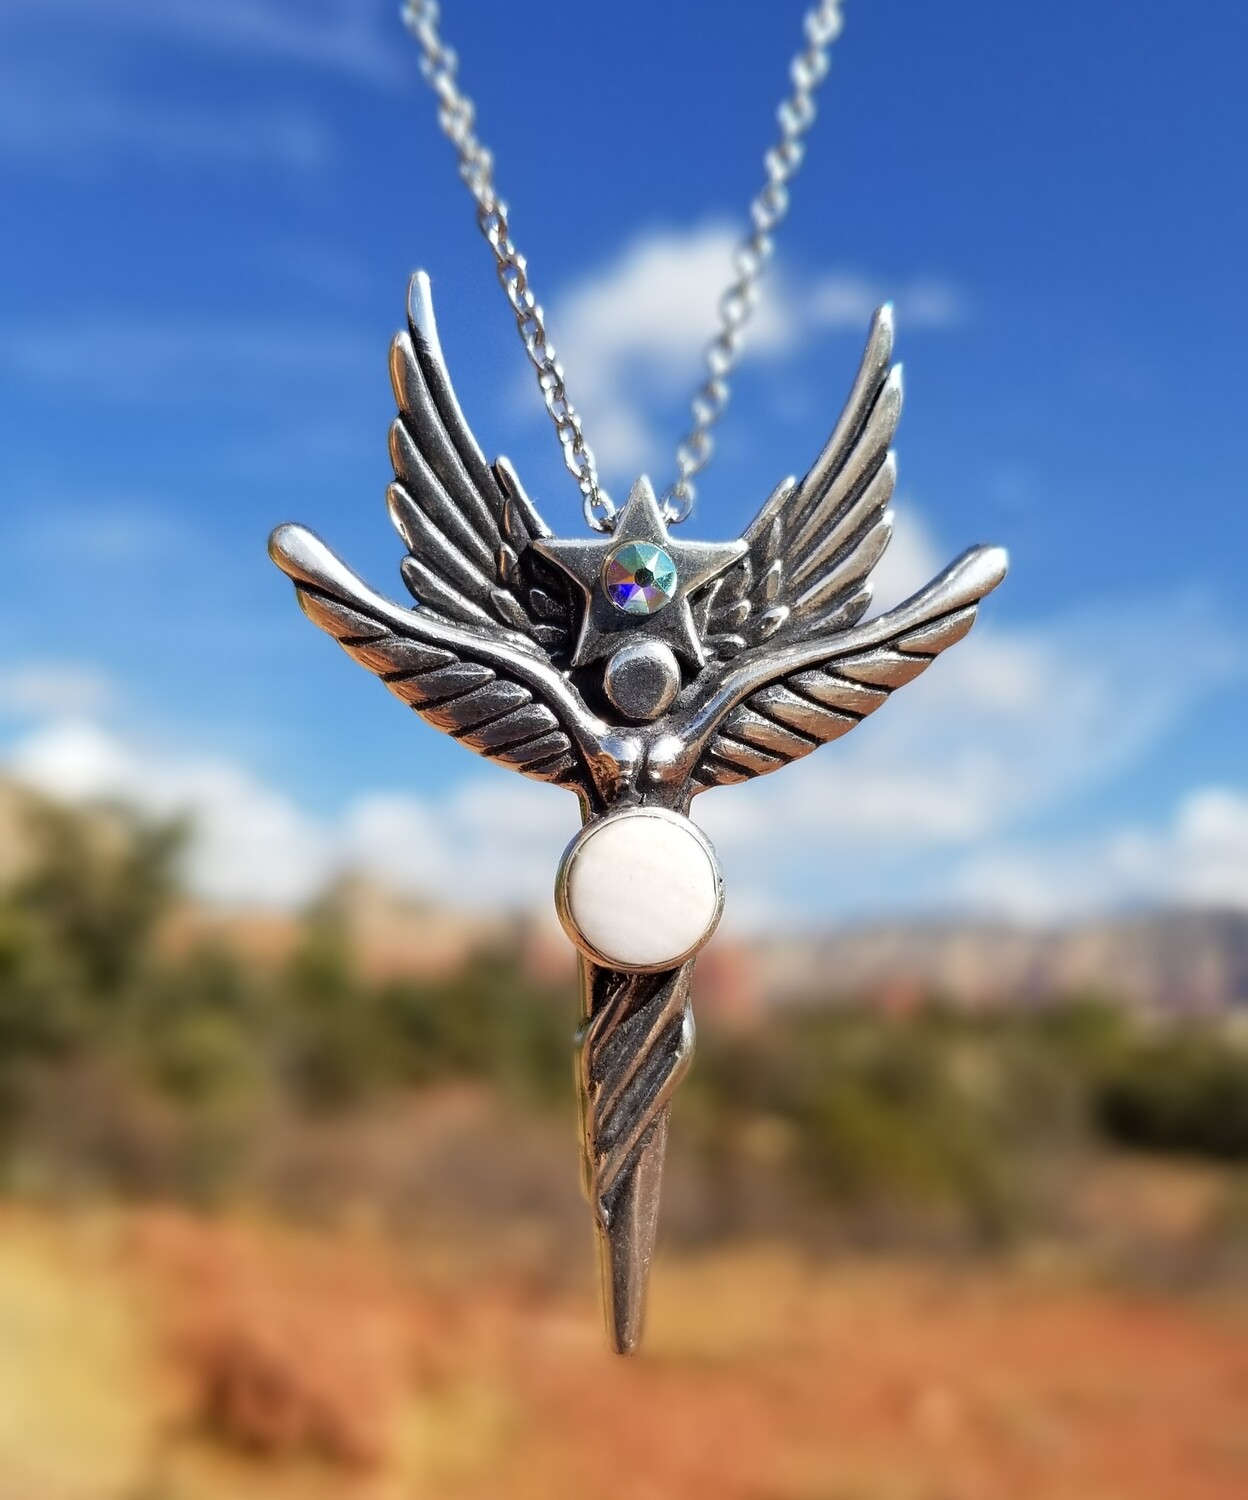 Beautiful Sedona Angel Star Silver/Rare White vortex crystal/$244.00 Retreat Angel sale/$233.00/288.00